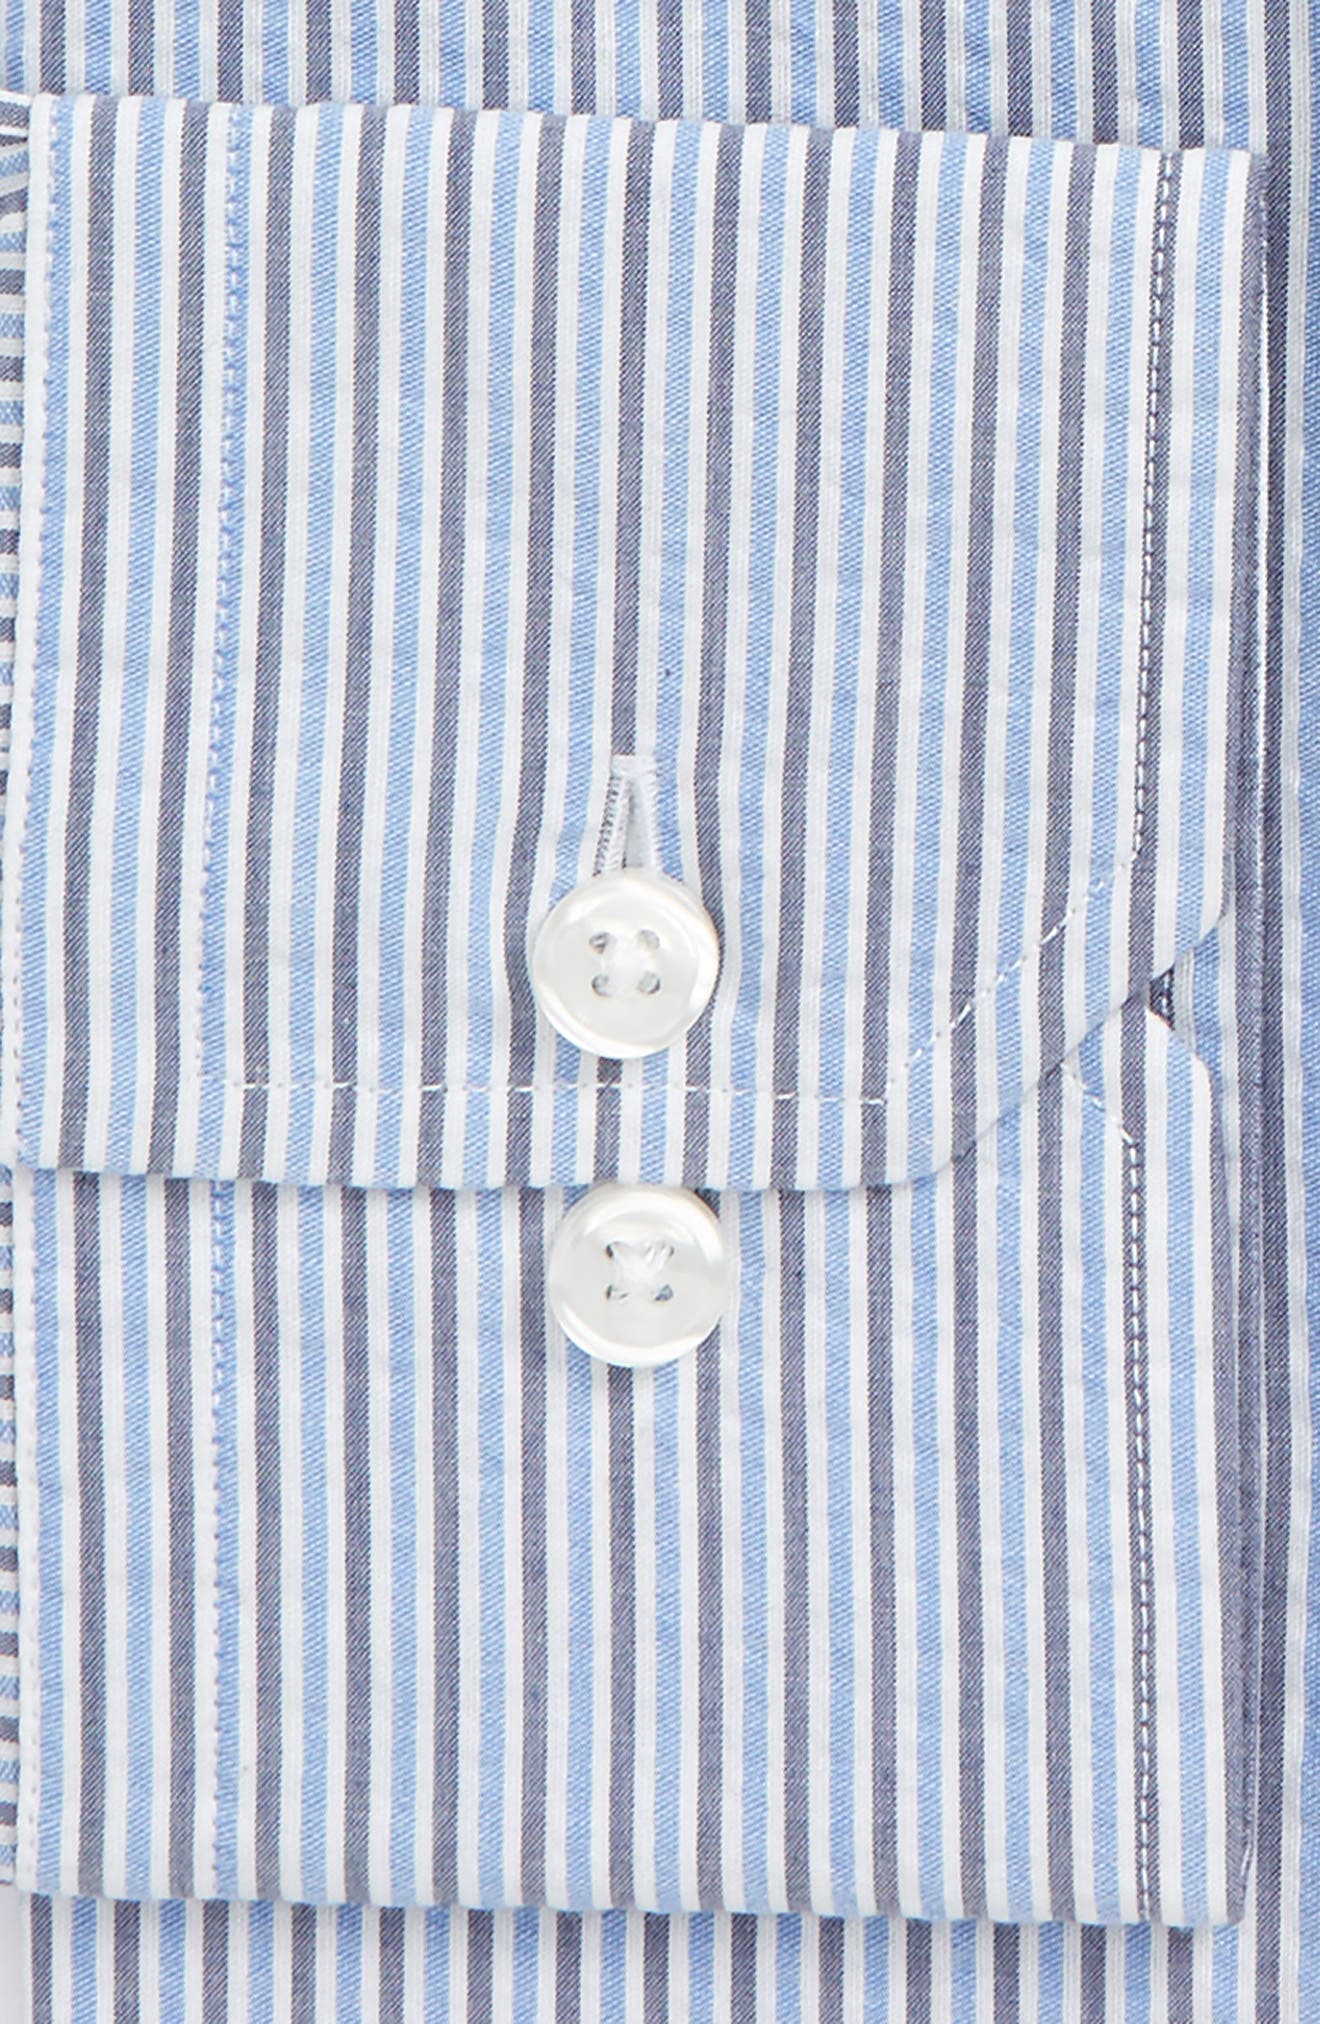 Extra Trim Fit Stripe Dress Shirt,                             Alternate thumbnail 2, color,                             Blue/ Grey